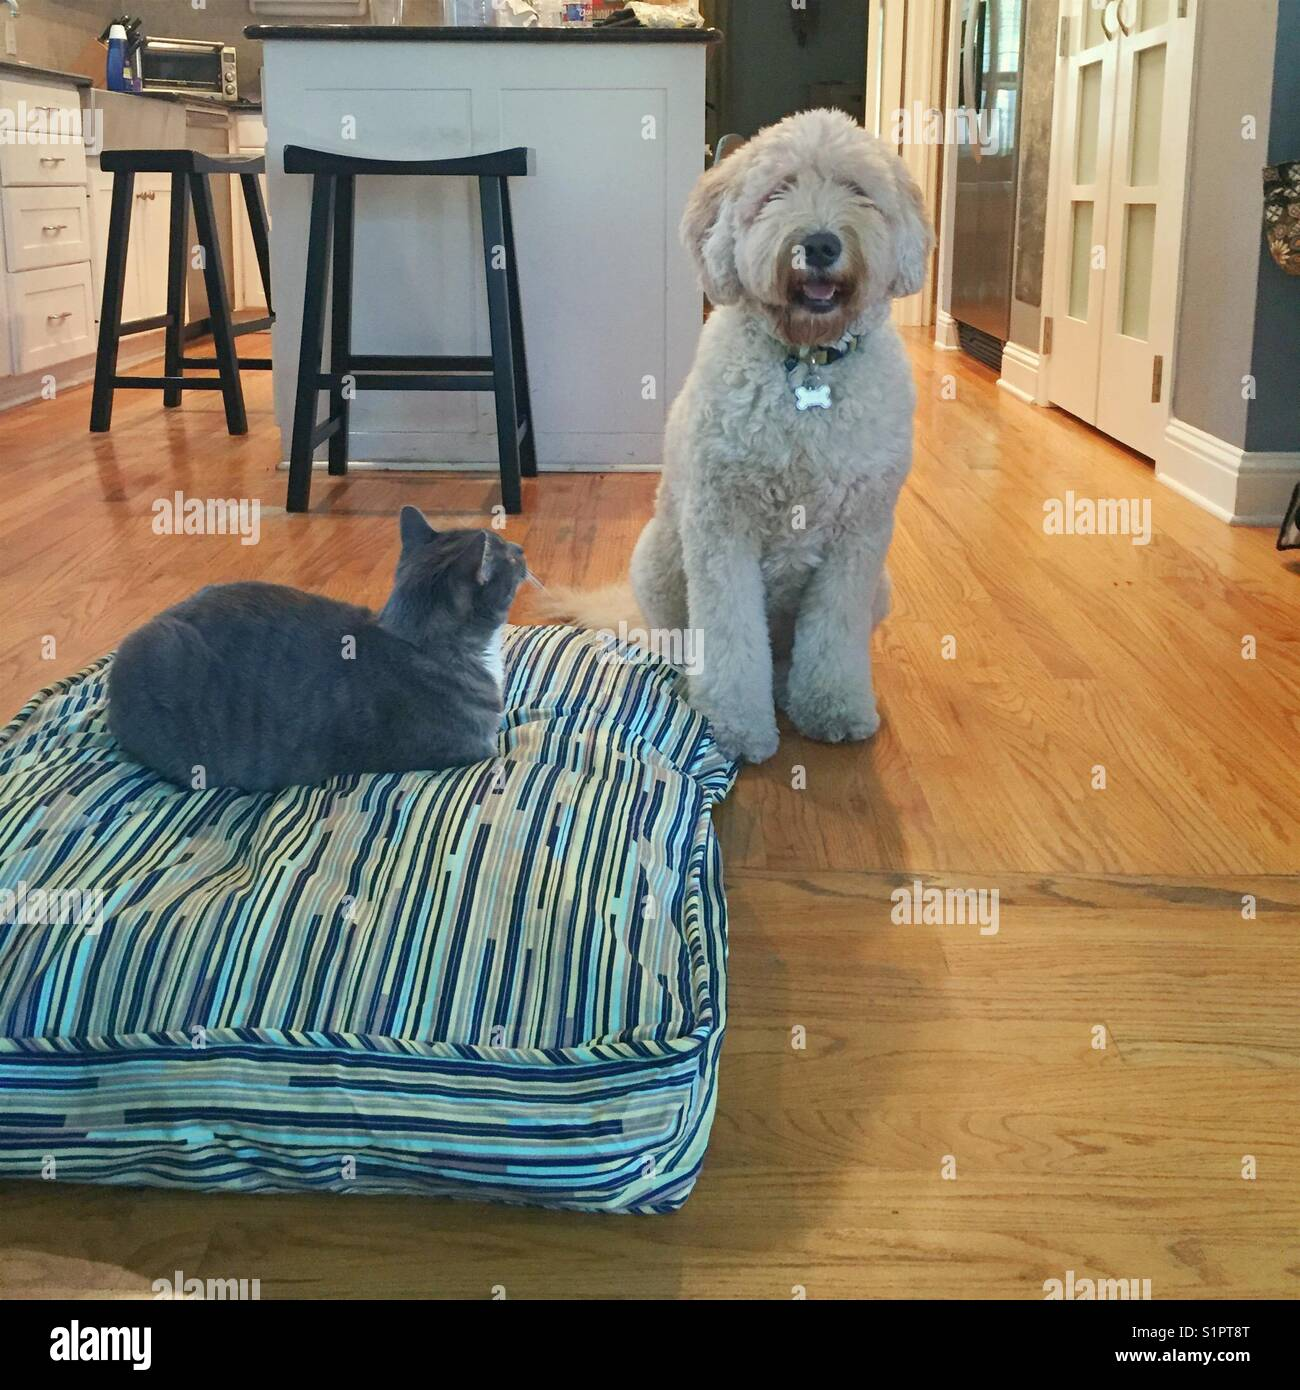 Cat takes over dog bed. - Stock Image